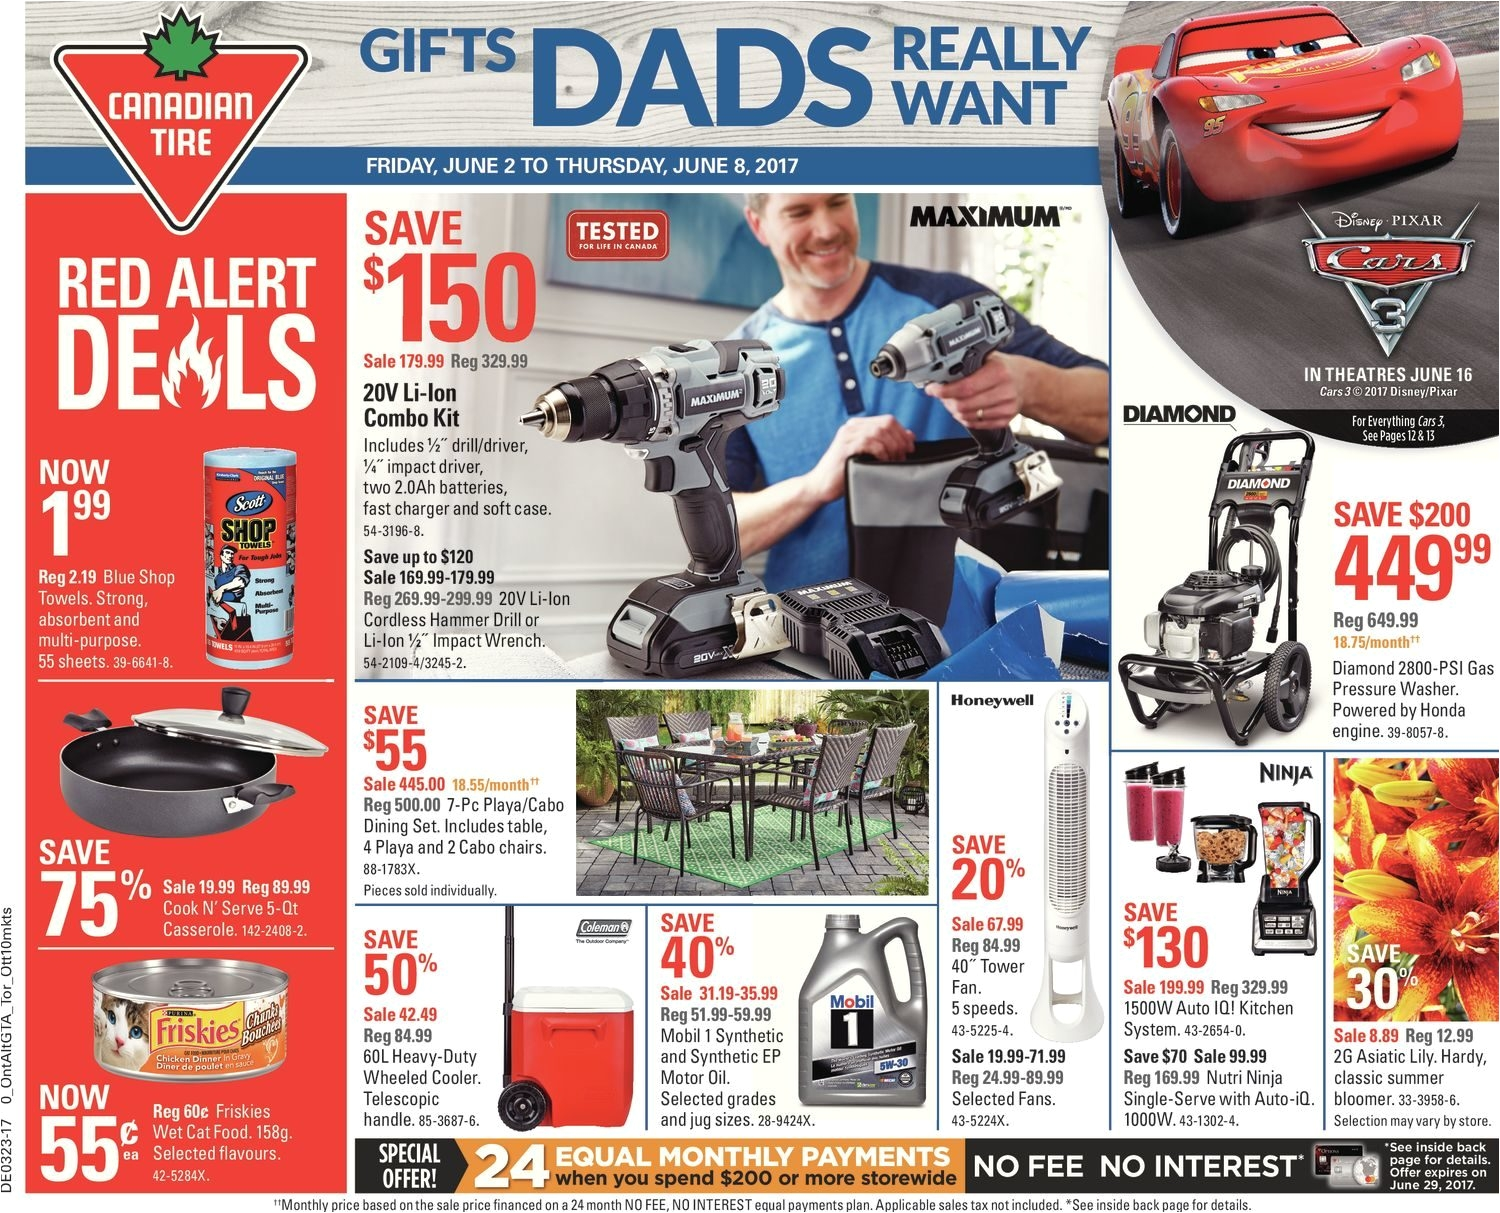 Rubbermaid Floor Mats Canadian Tire Canadian Tire Weekly Flyer Gifts Dads Really Want Jun 2 8